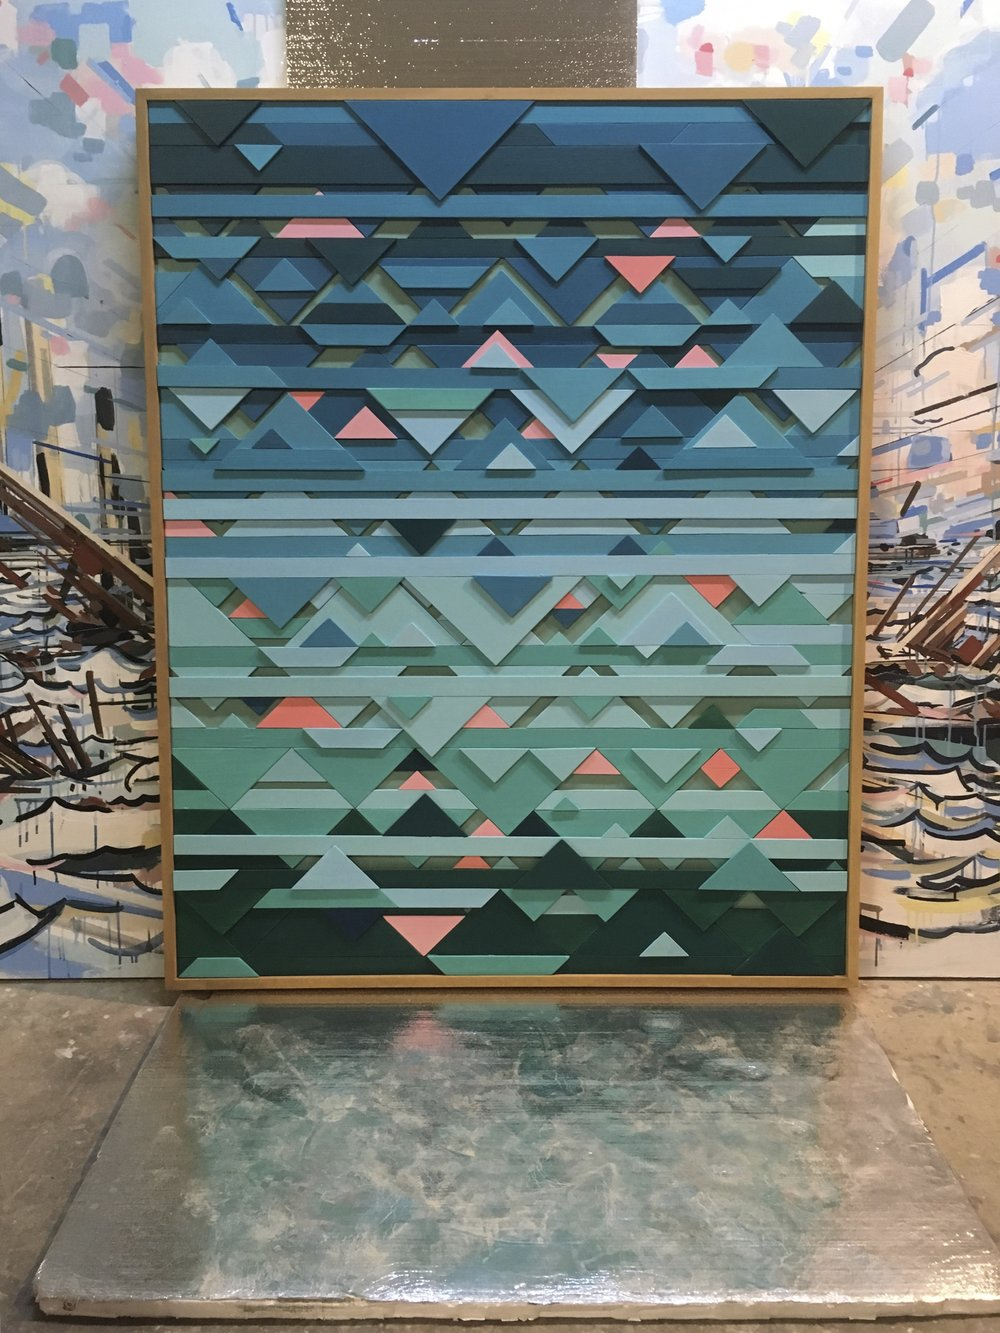 "Triangulated Horizons. 48x60x3"". Wood, paint. Private Collection Austin, TX. Background: 8x24' painting in progress."